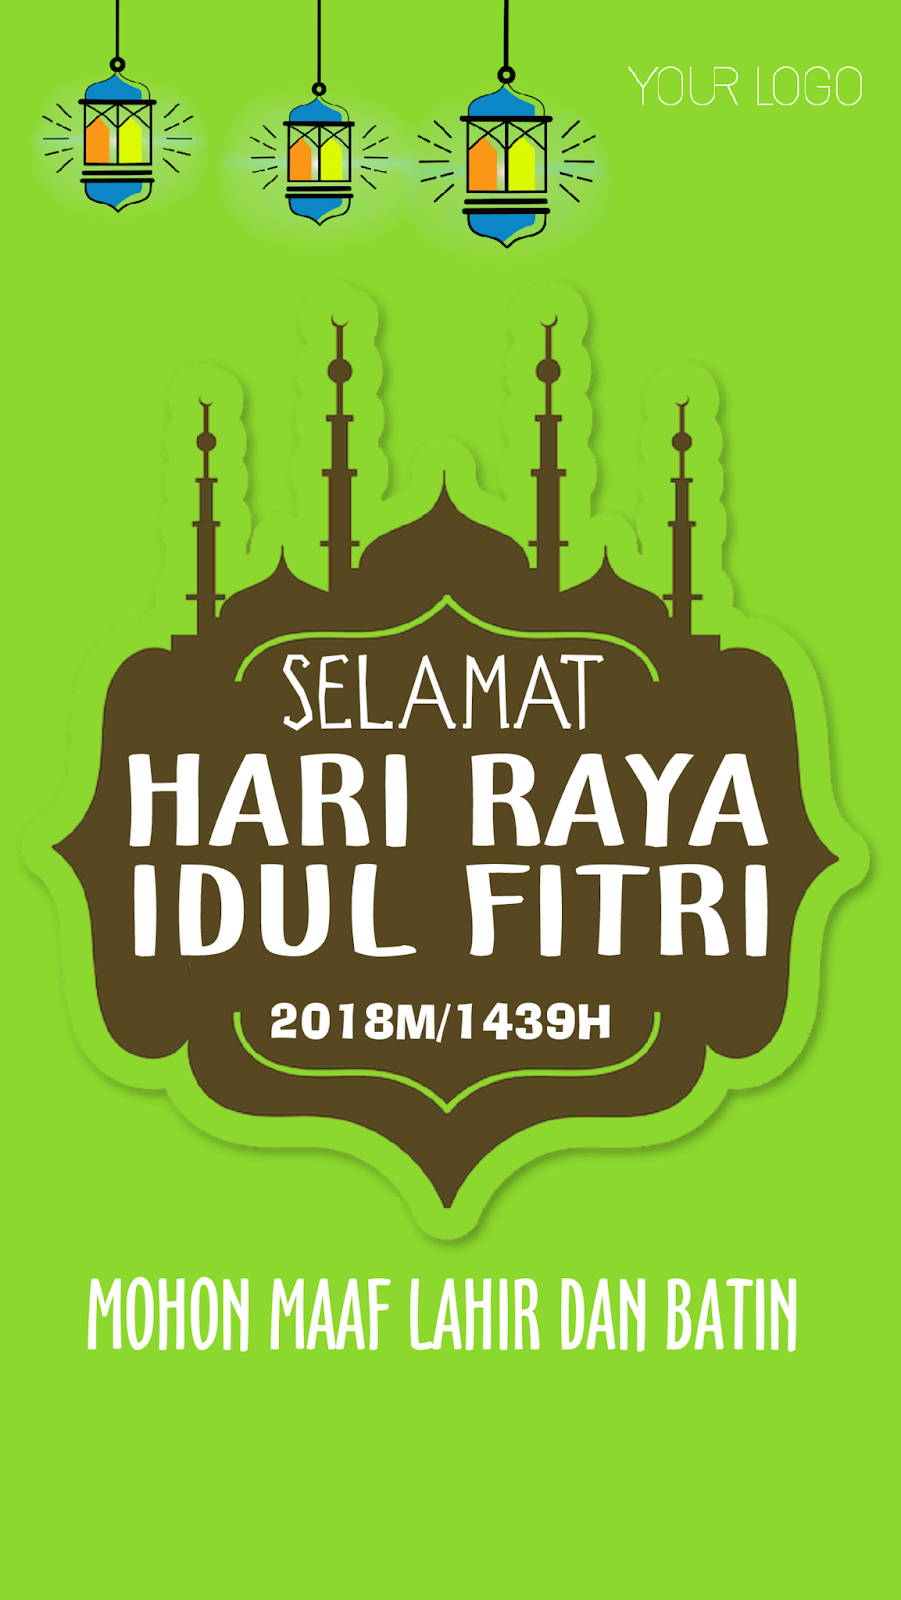 35 Ide Pamflet Idul Fitri Little Duckling Blog